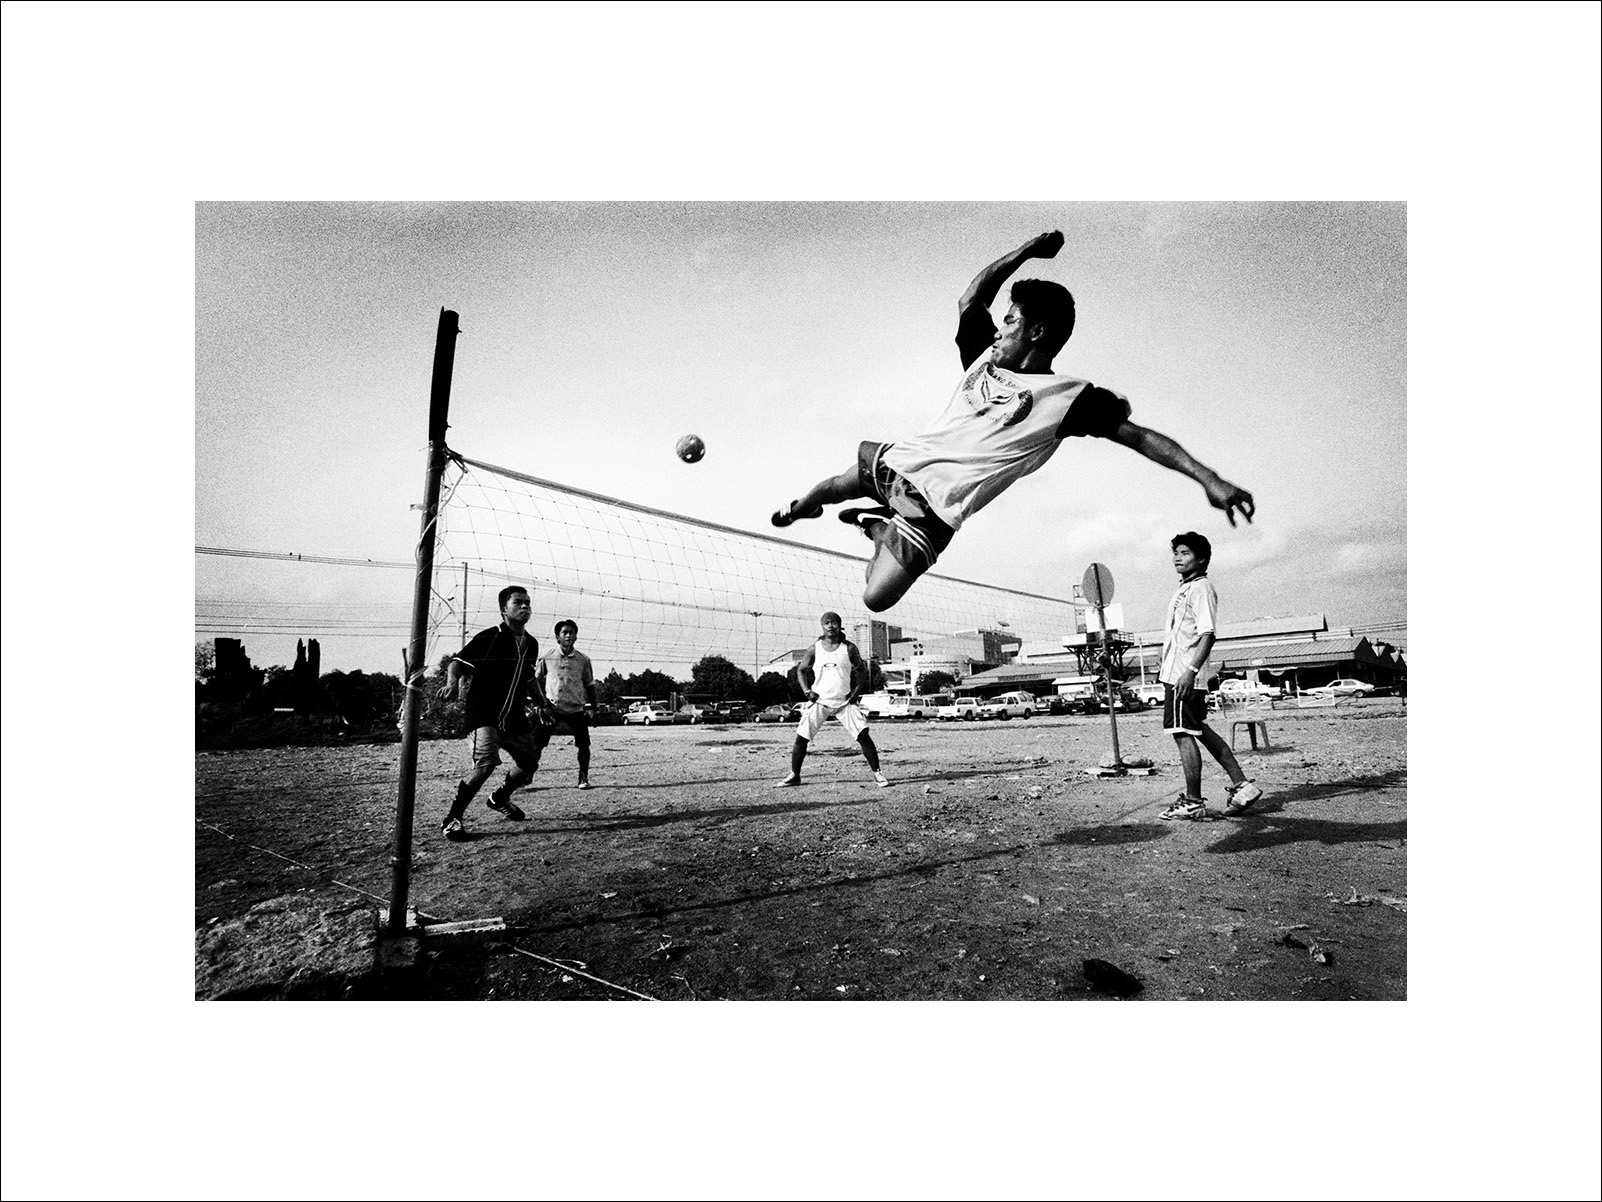 A Takraw player kicks the ball during a takraw game in Bangkok, Thailand